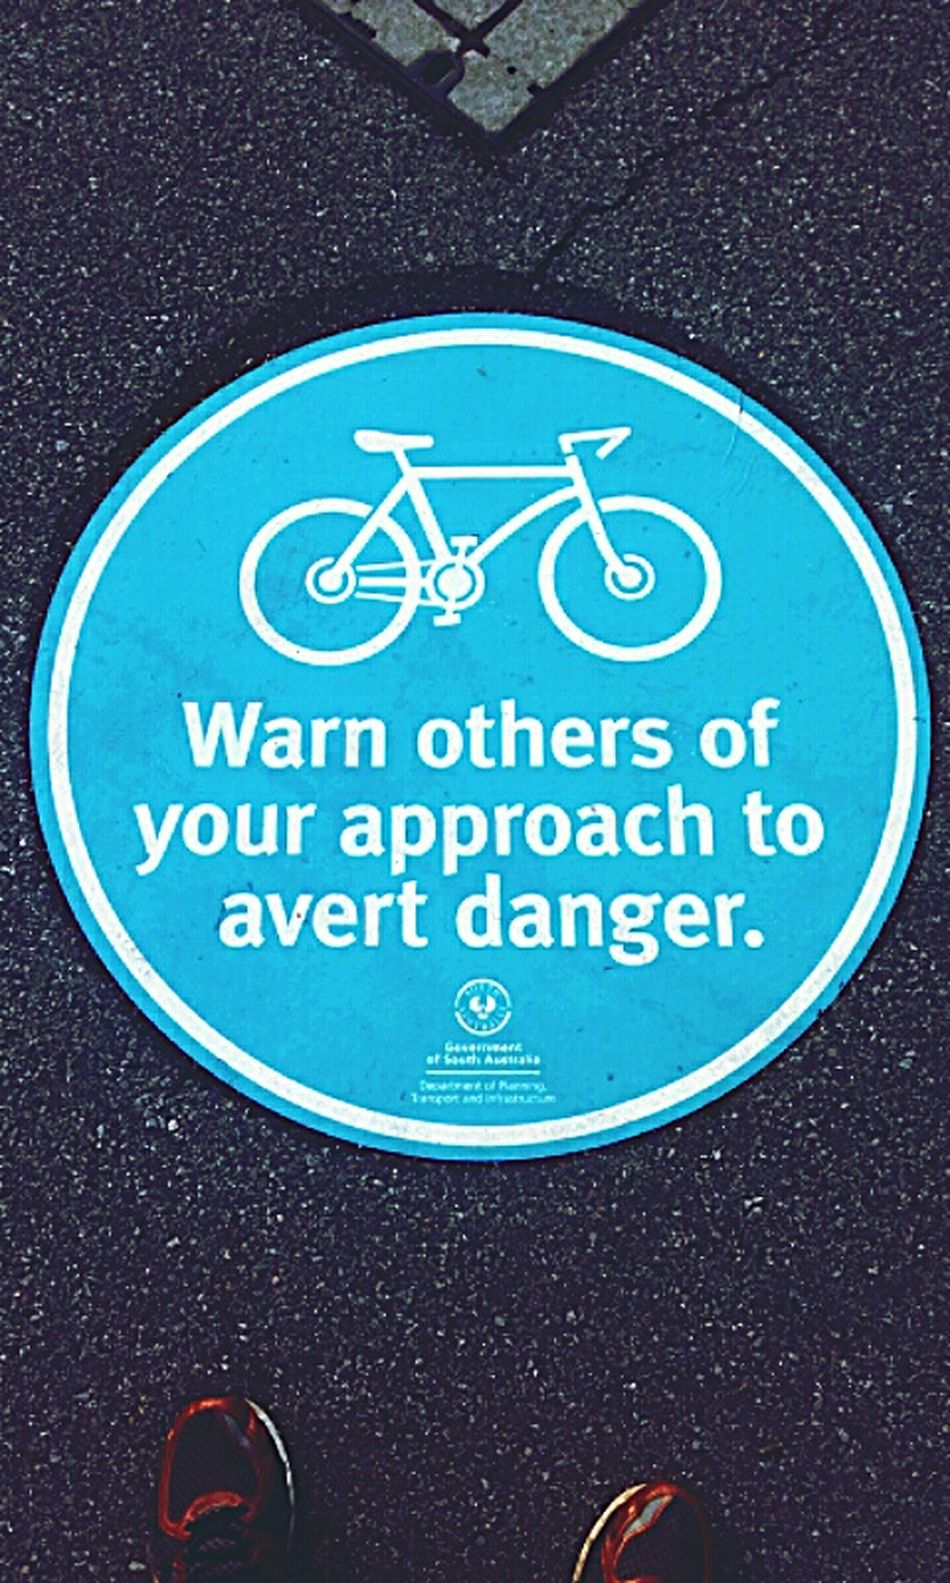 Sidewalk Discoveries Sign Sidewalk Photography Signs Sidewalk Sidewalk Sign Pavement Sidewalk View Signs_collection Signs, Signs, & More Signs Signs & More Signs SIGN. Signstalkers Danger Sign Signporn SIGNS. Notices Signage Warning Signs  Notice Information Sign Bicycle Sign Bicycle Lane Bicycle Path Signs Signs Everywhere Signs